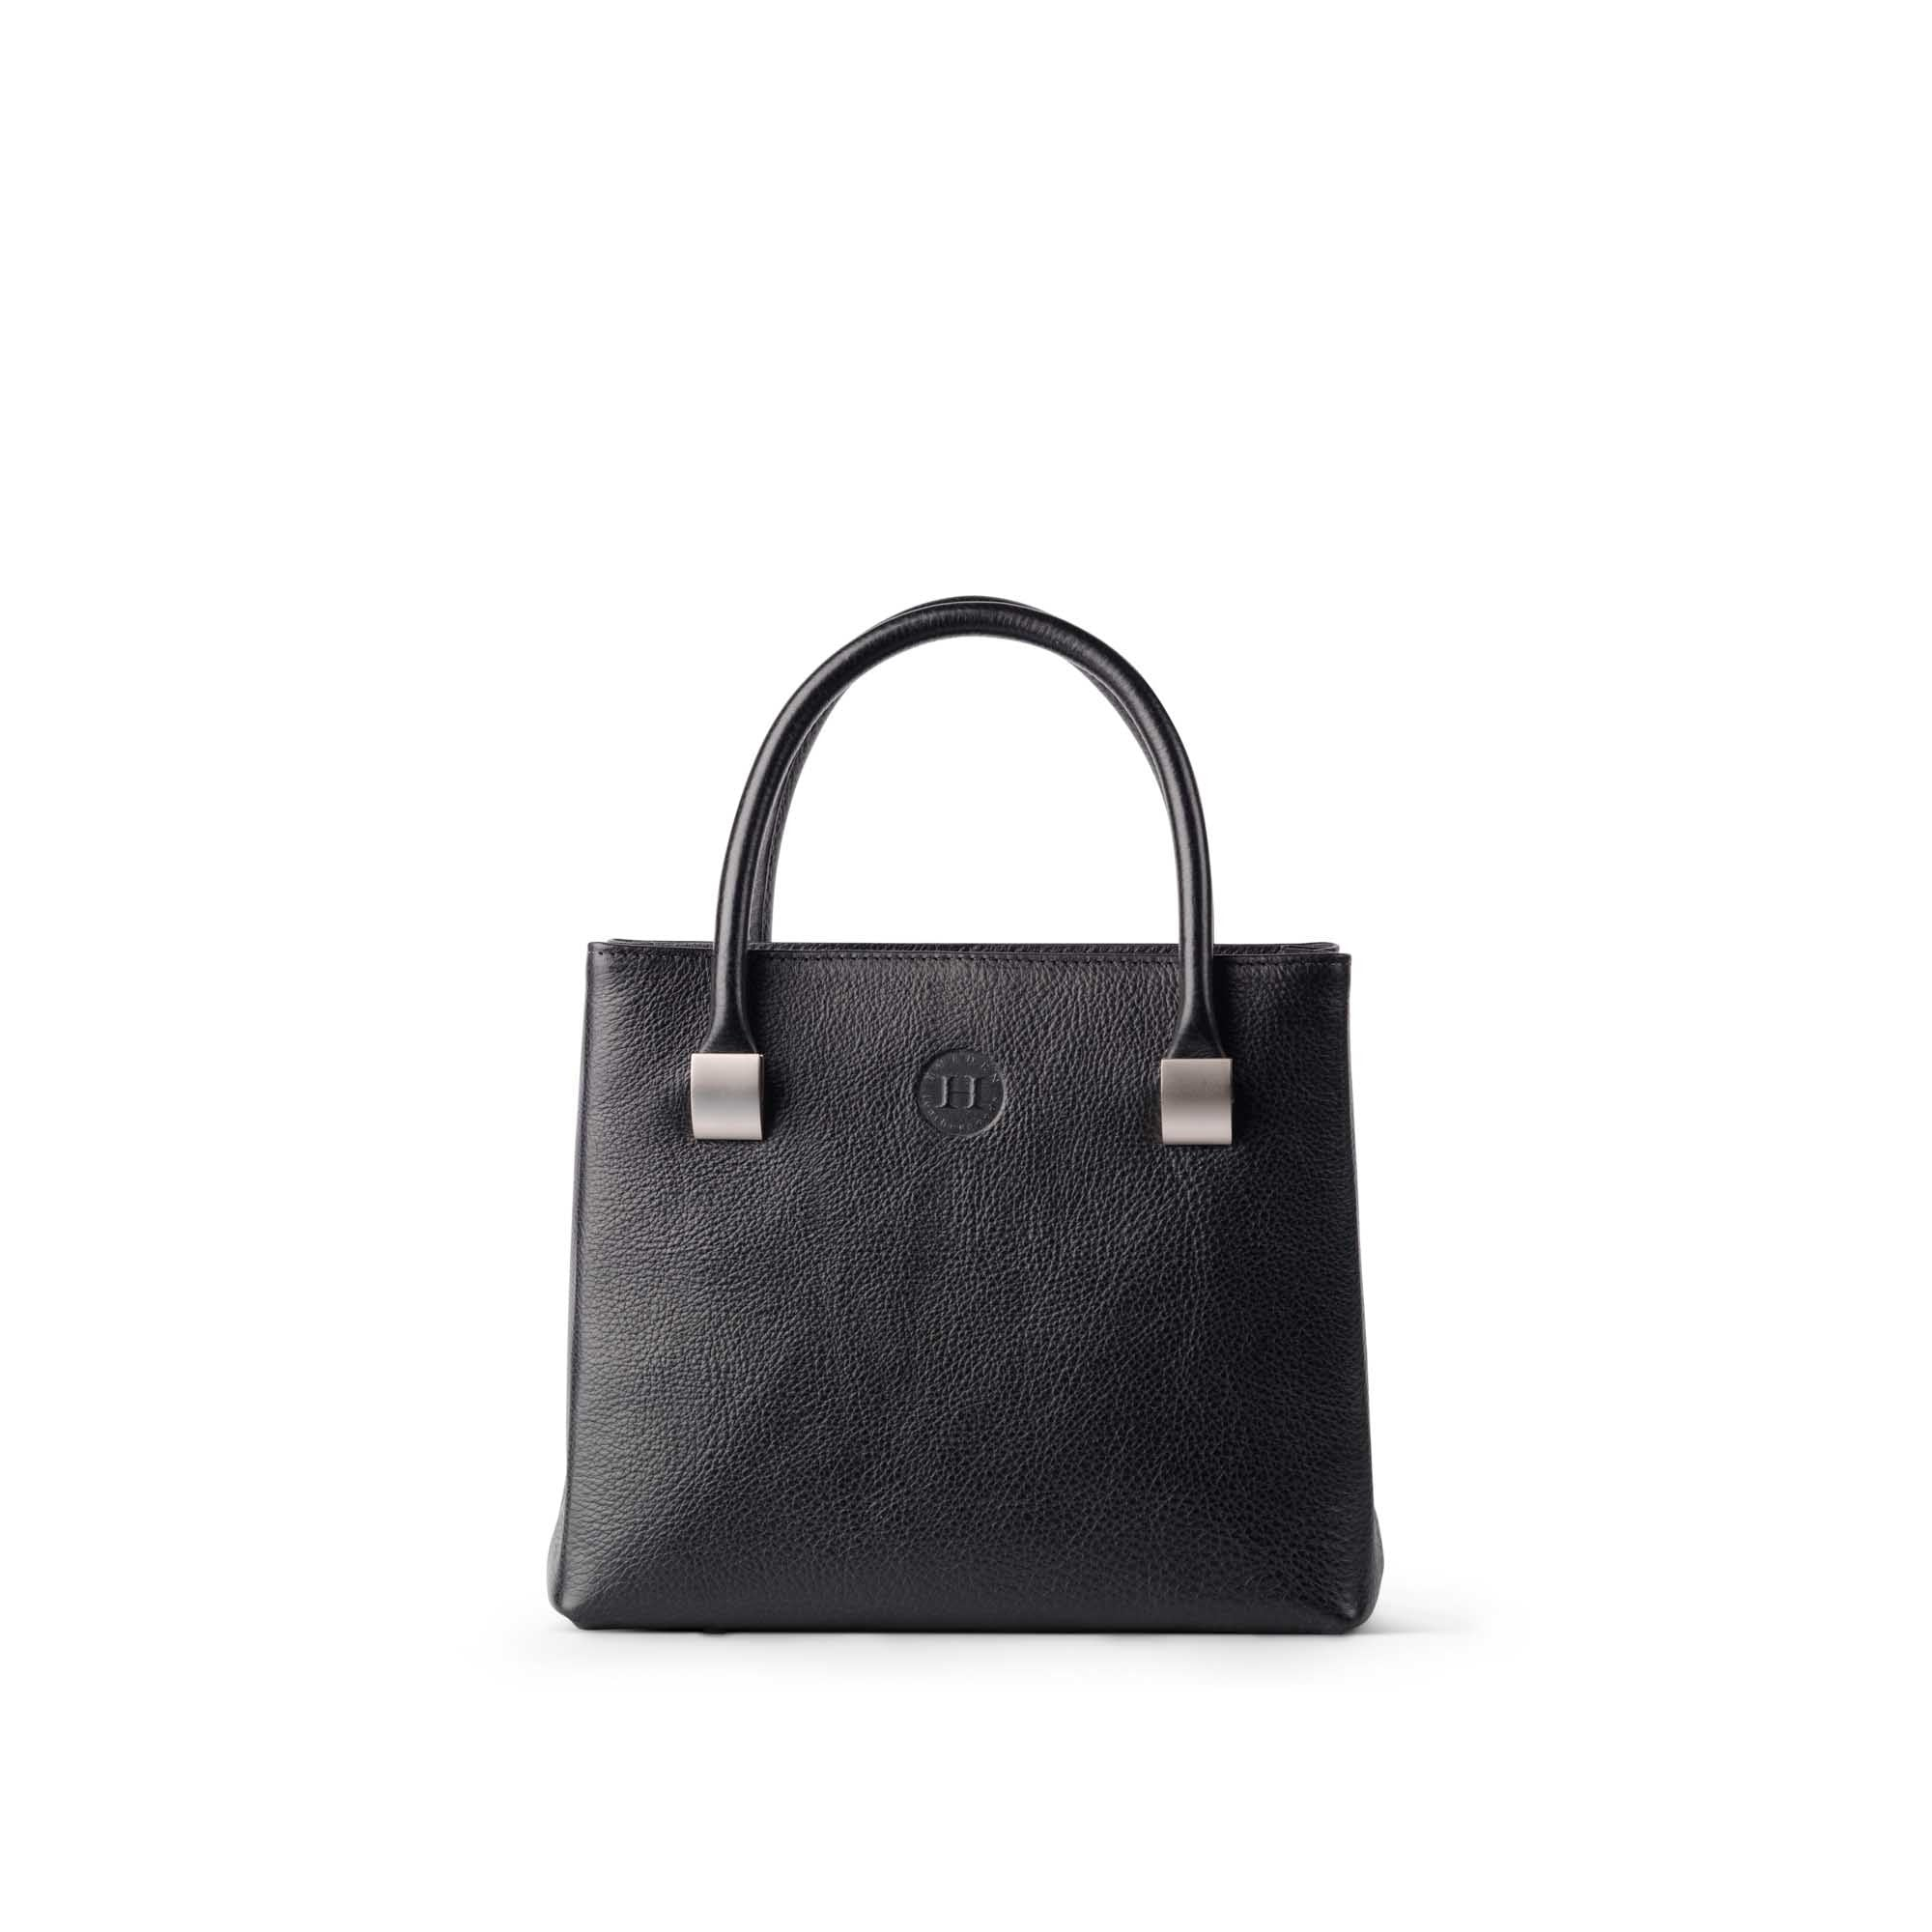 Aoife Leather Handbag Medium Black - Holden Leathergoods, leather bags handmade in Ireland